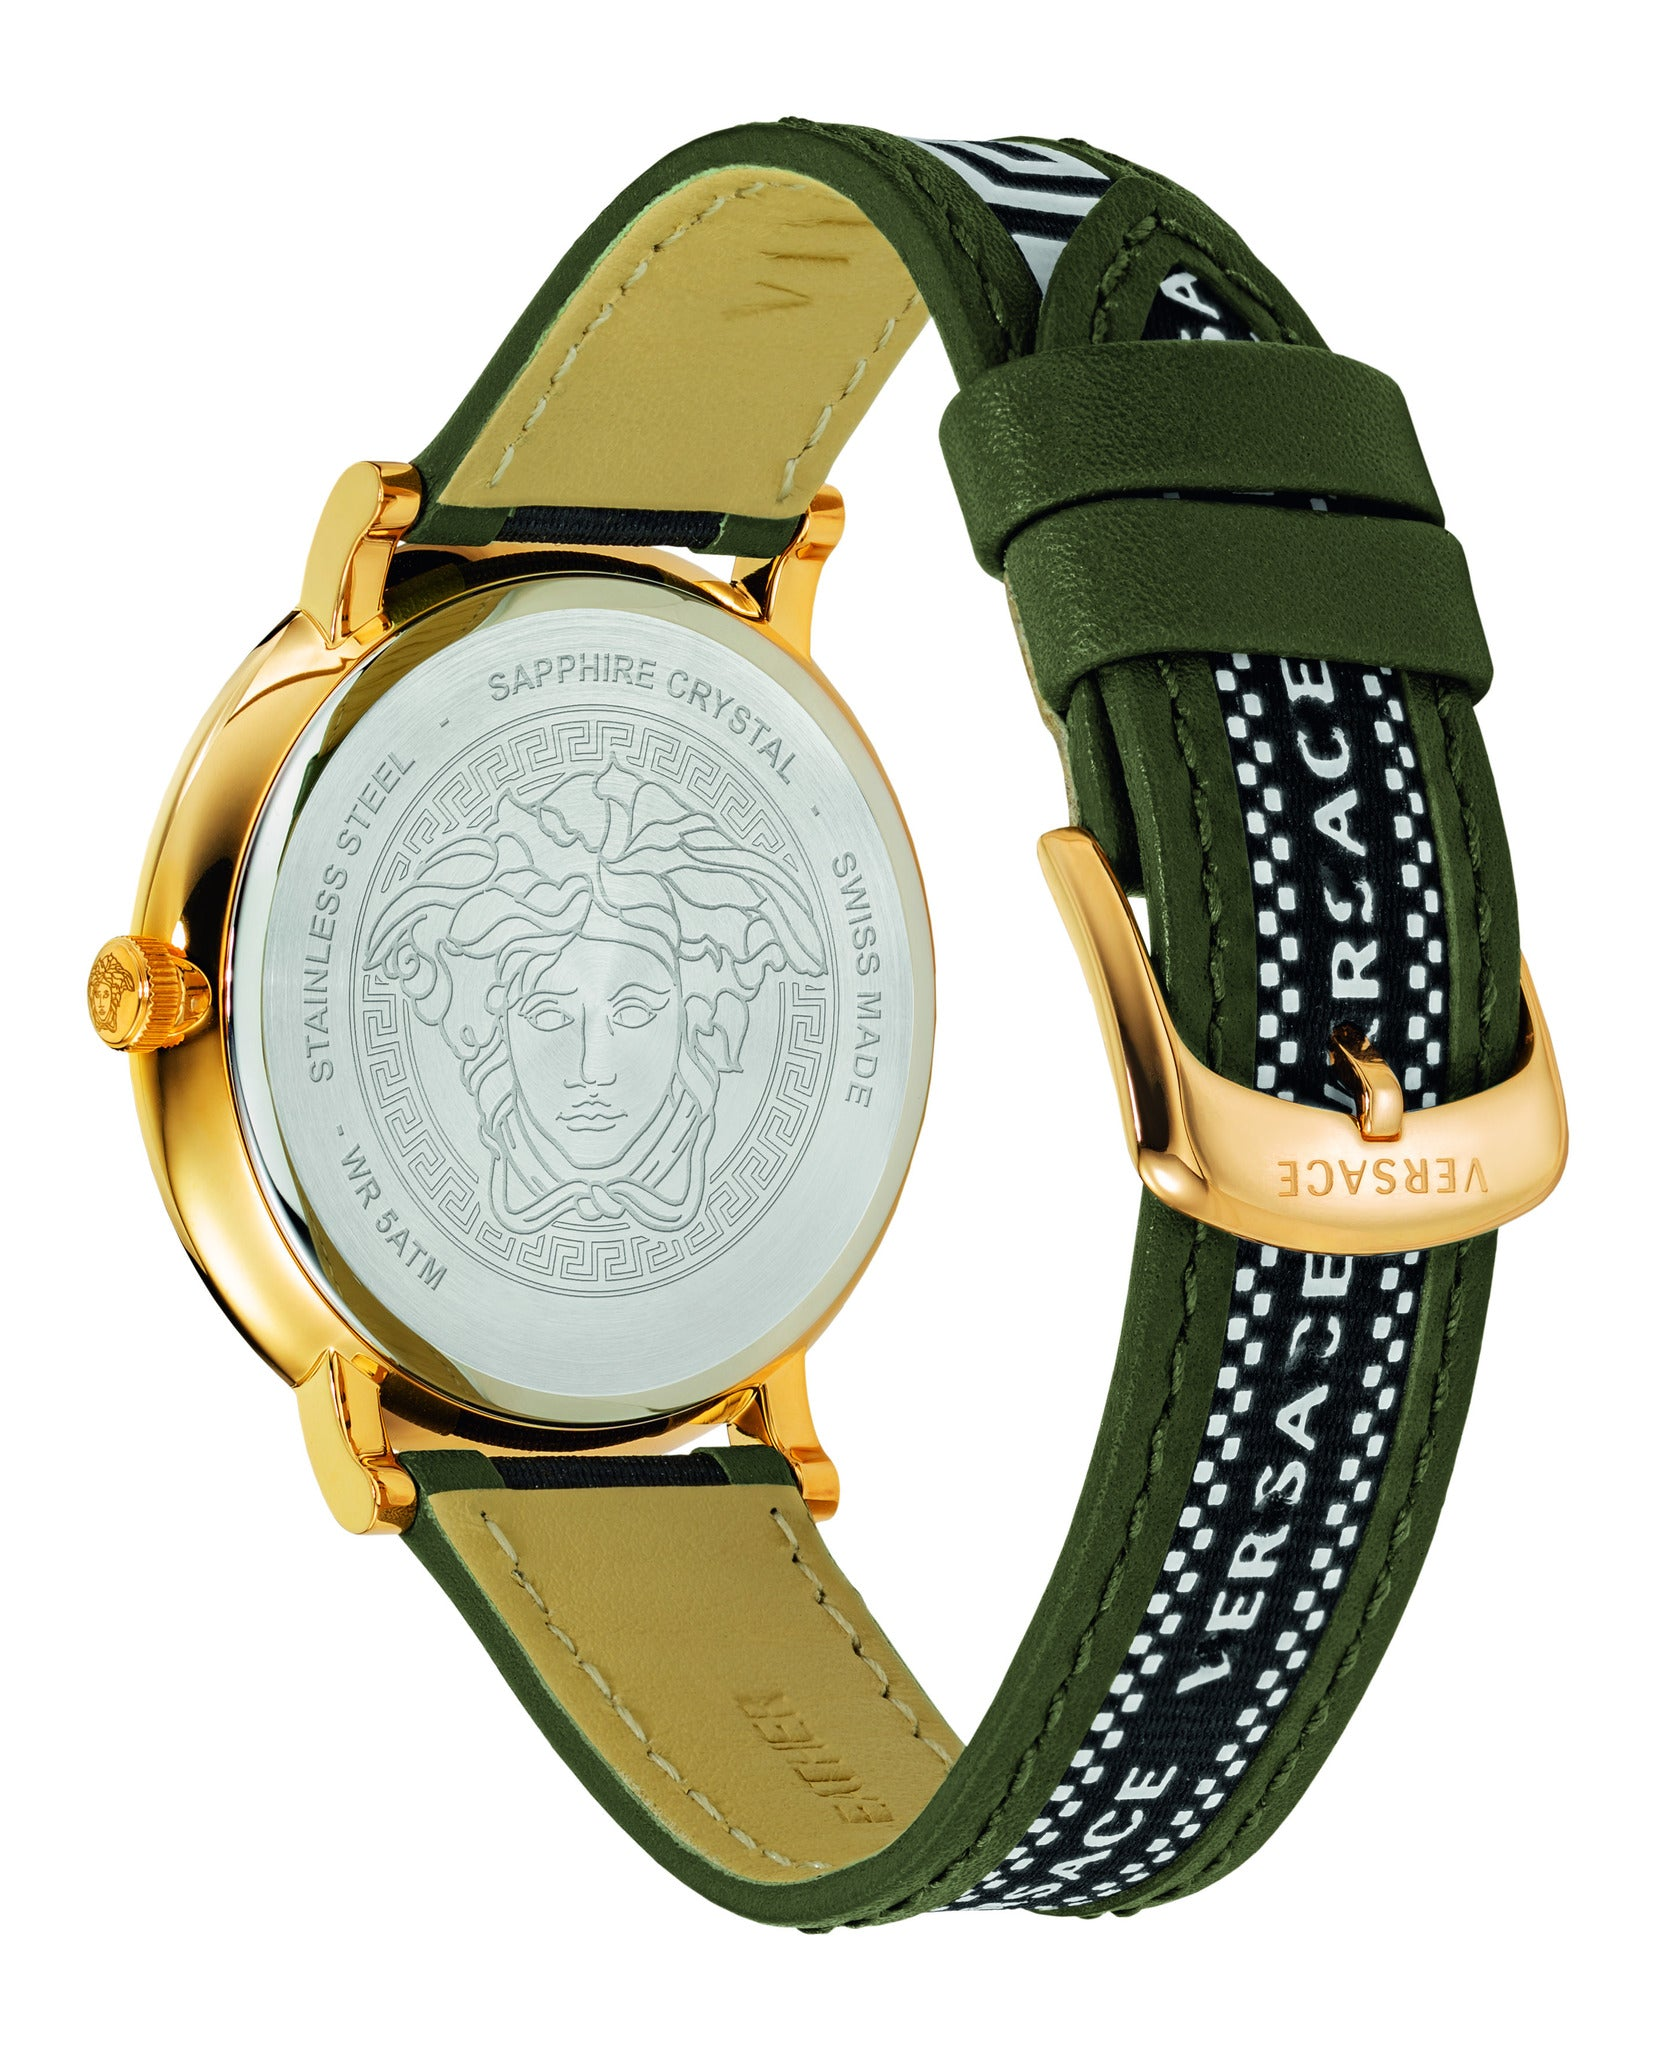 Versace V-Circle / Greca Edi Watch